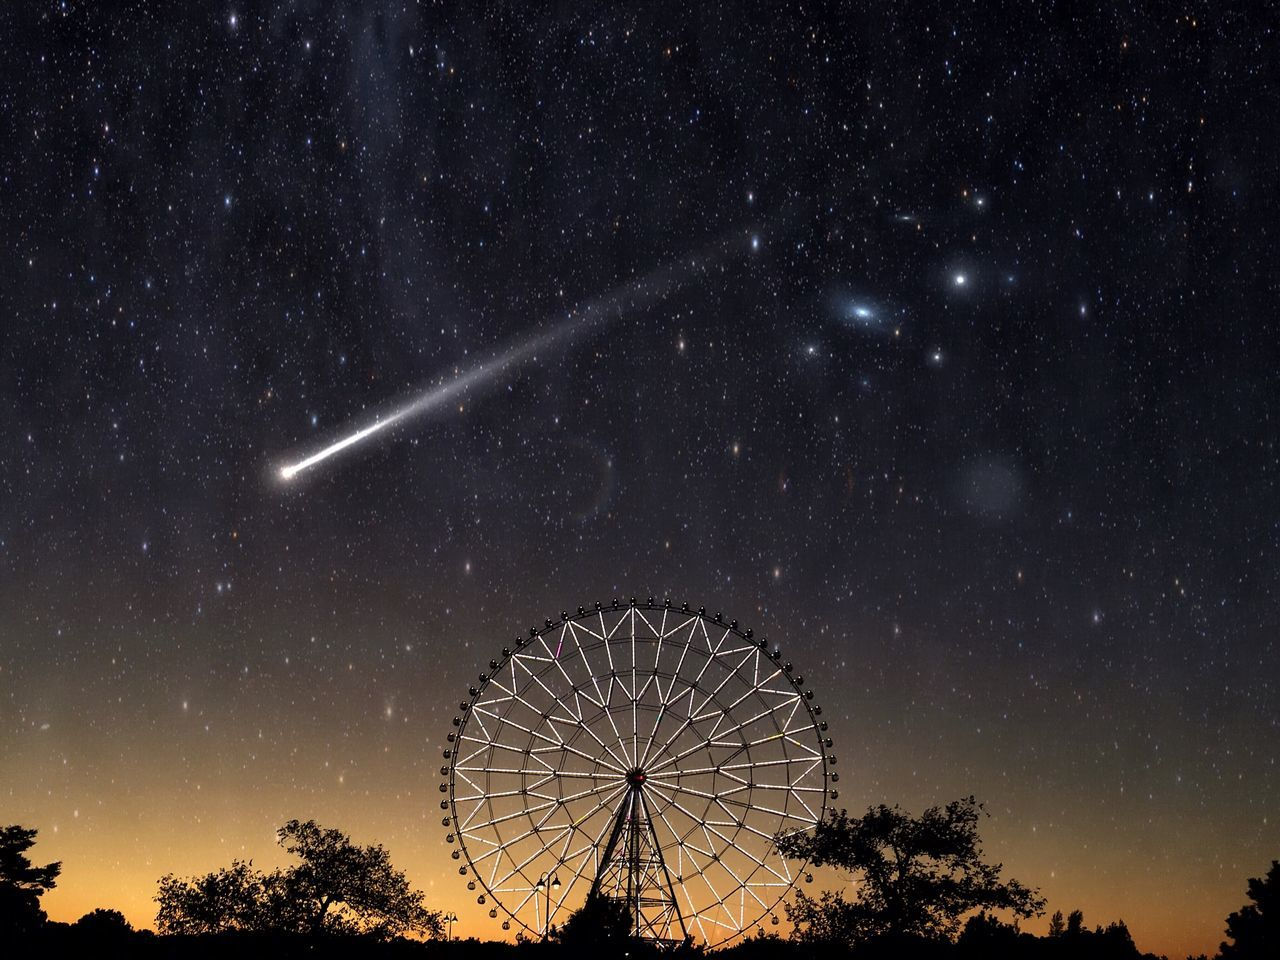 Shooting Star| Night Astronomy Sky Low Angle View Star - Space Galaxy Beauty In Nature Scenics Outdoors No People Illuminated Arts Culture And Entertainment Nature Star Trail Space Star Light And Shadow Sunset Silhouette Sunset Silhouettes Sunset_collection Nightphotography Night Lights Night Photography Beautiful